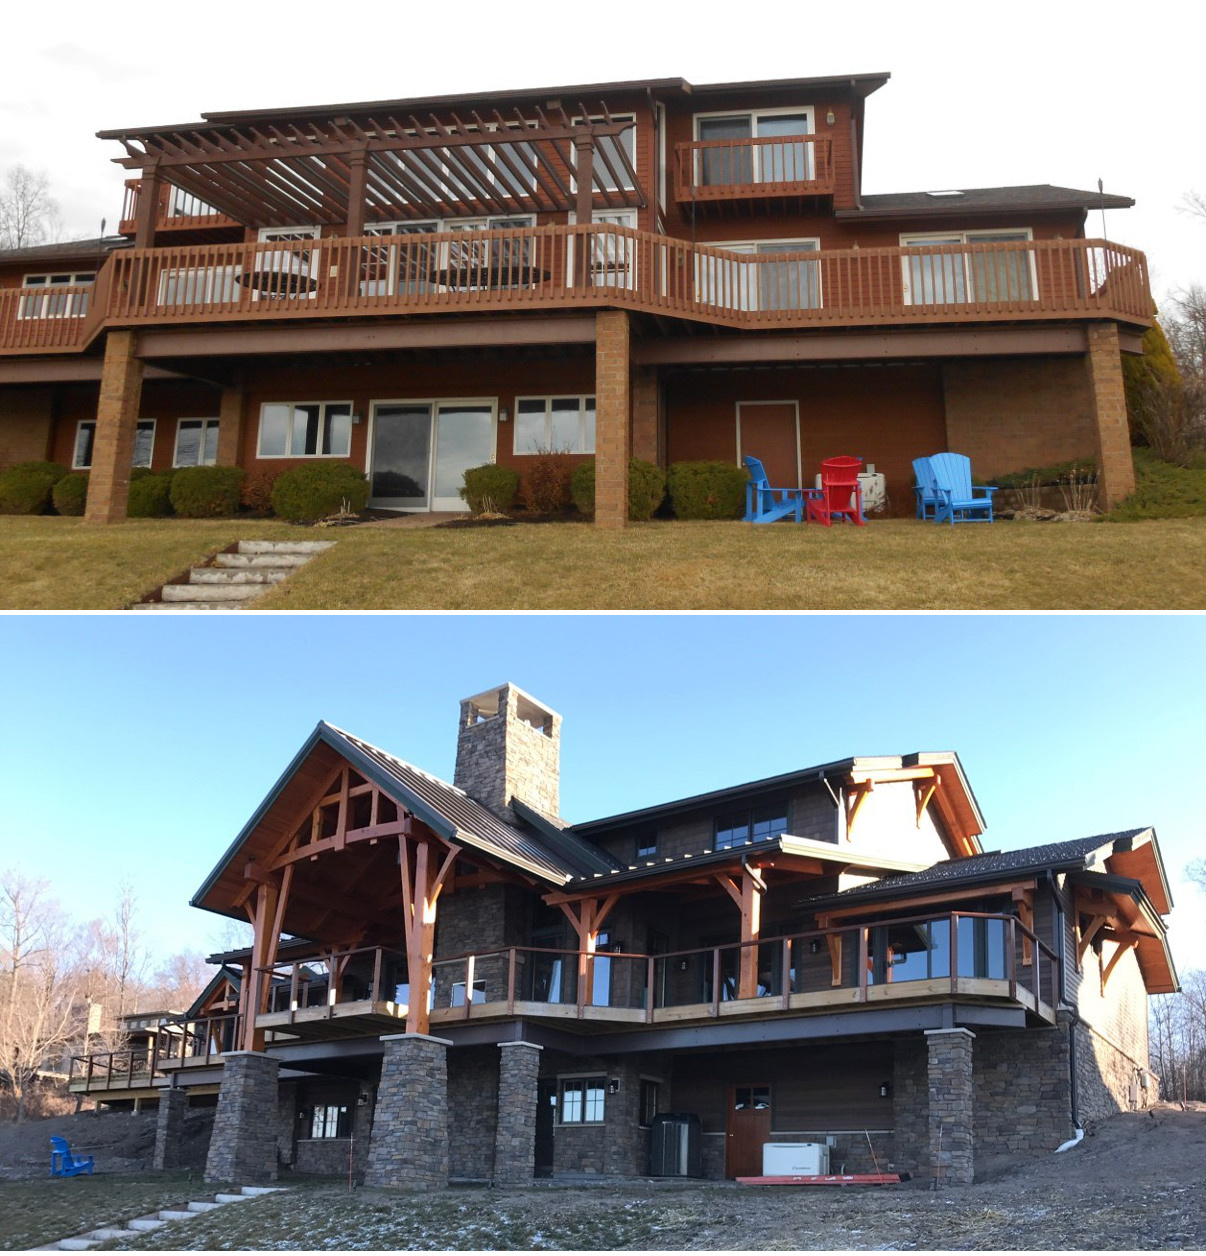 The lake side of the home before (top) and with the remodel nearly complete (bottom).